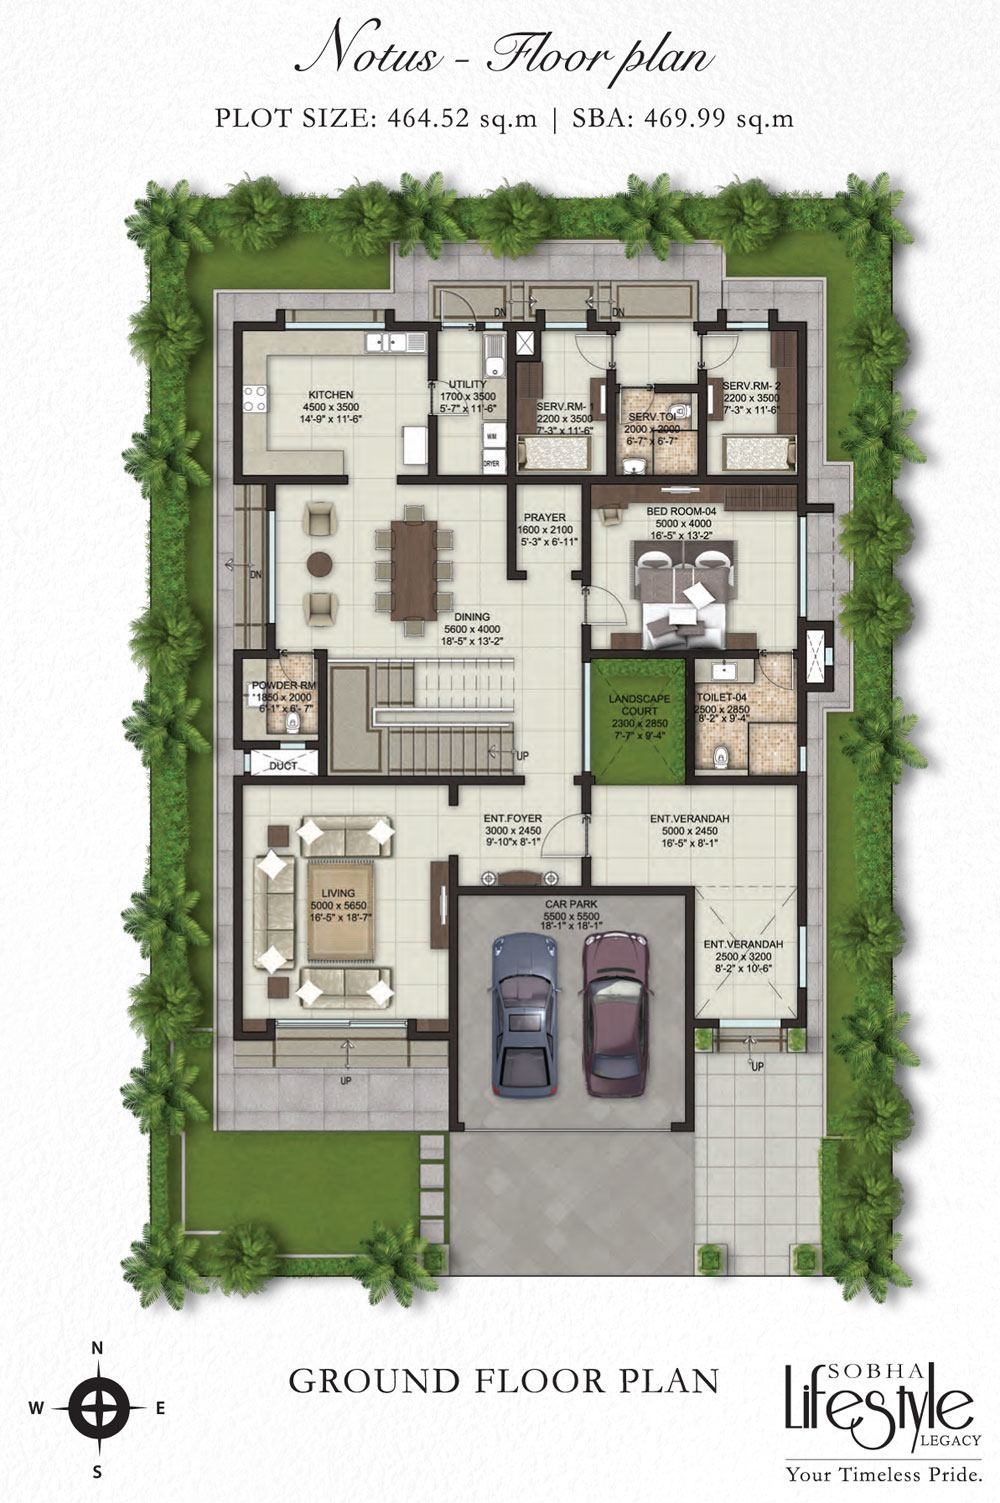 Sobha lifestyle legacy 4 bedroom villas bangalore for Villa floor plans